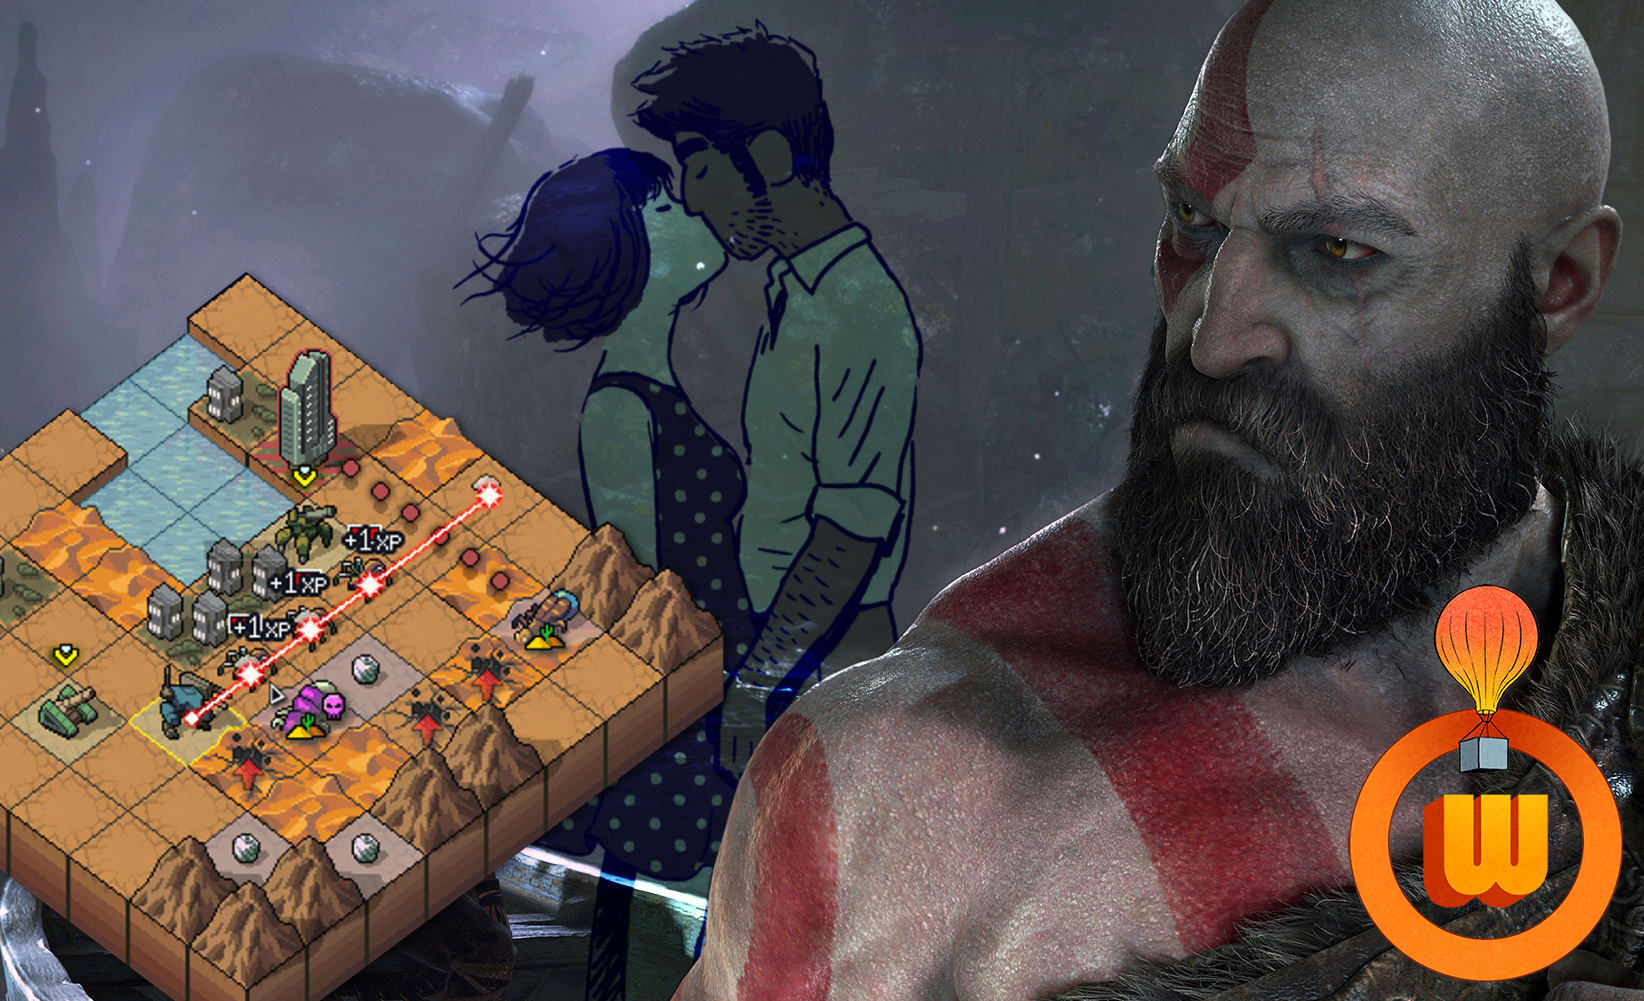 Our favorite games of 2018